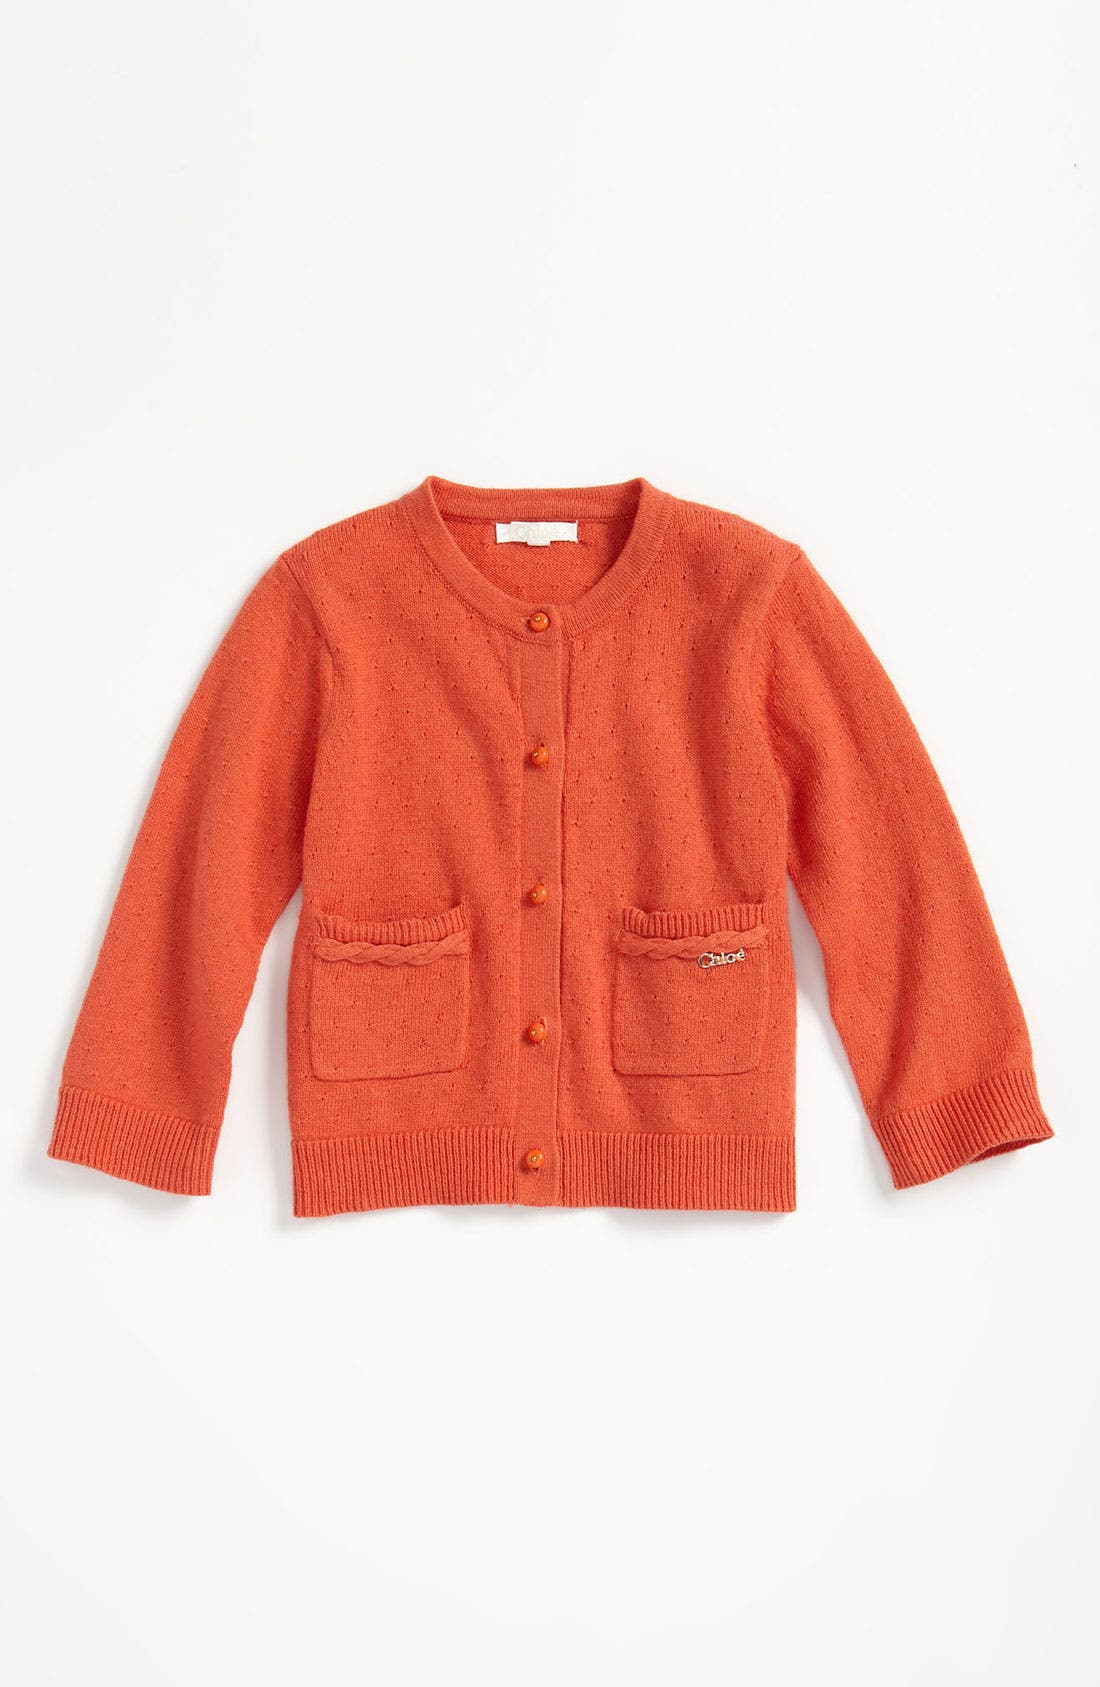 Main Image - Chloé Pointelle Cardigan (Toddler)